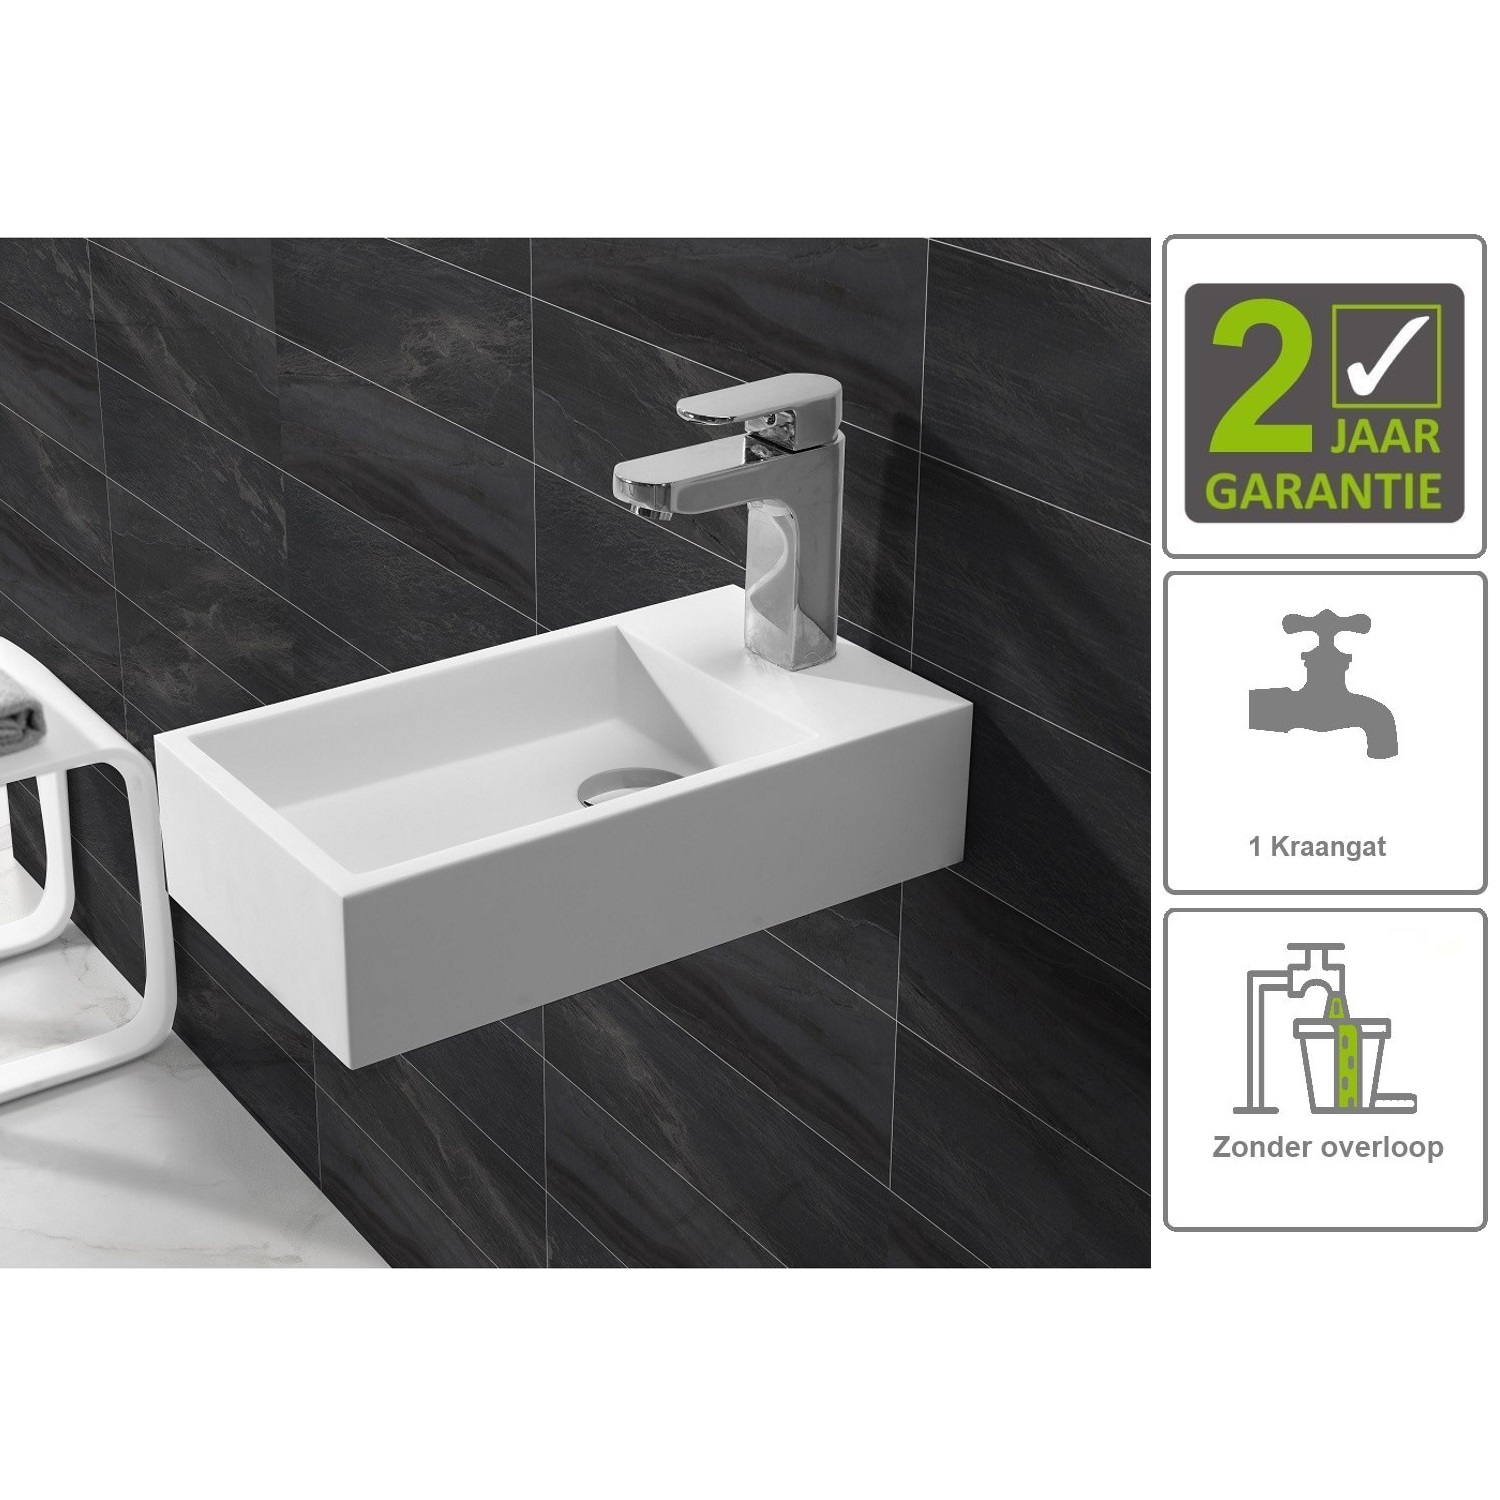 Sanitair-producten 73841 BWS Fontein Solid Surface 40x22x10 cm (Rechts) Mat Wit